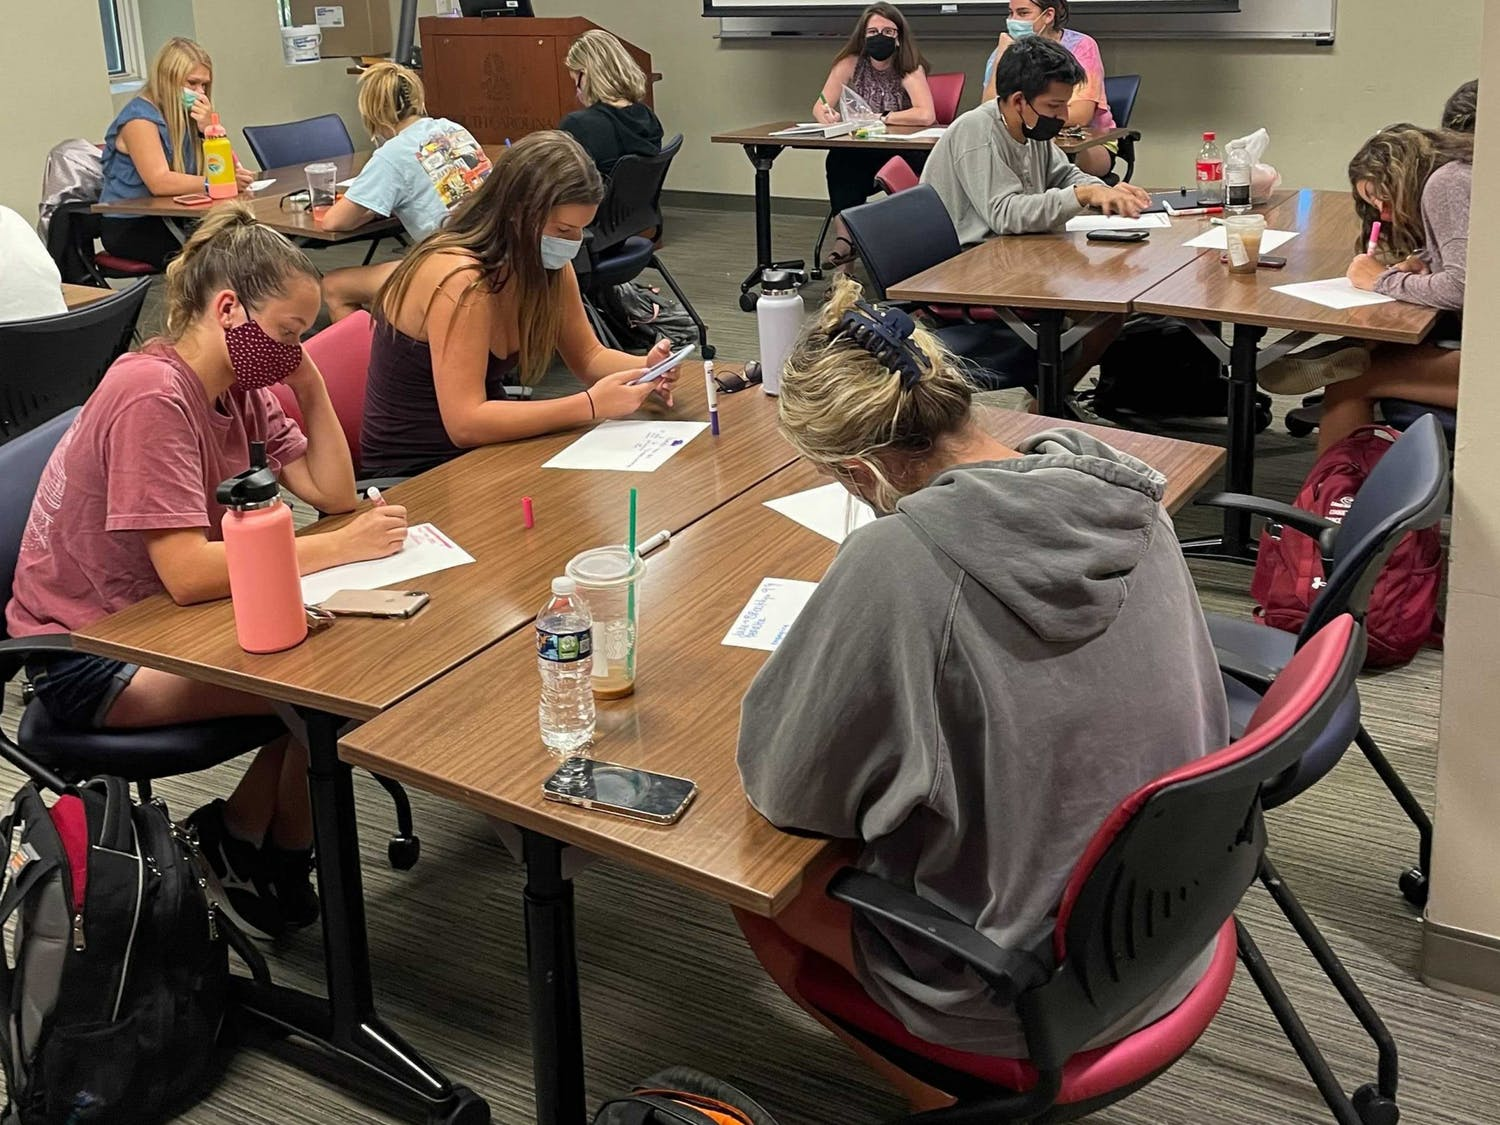 Peer leaders are working on their lesson plans for the students in U101.